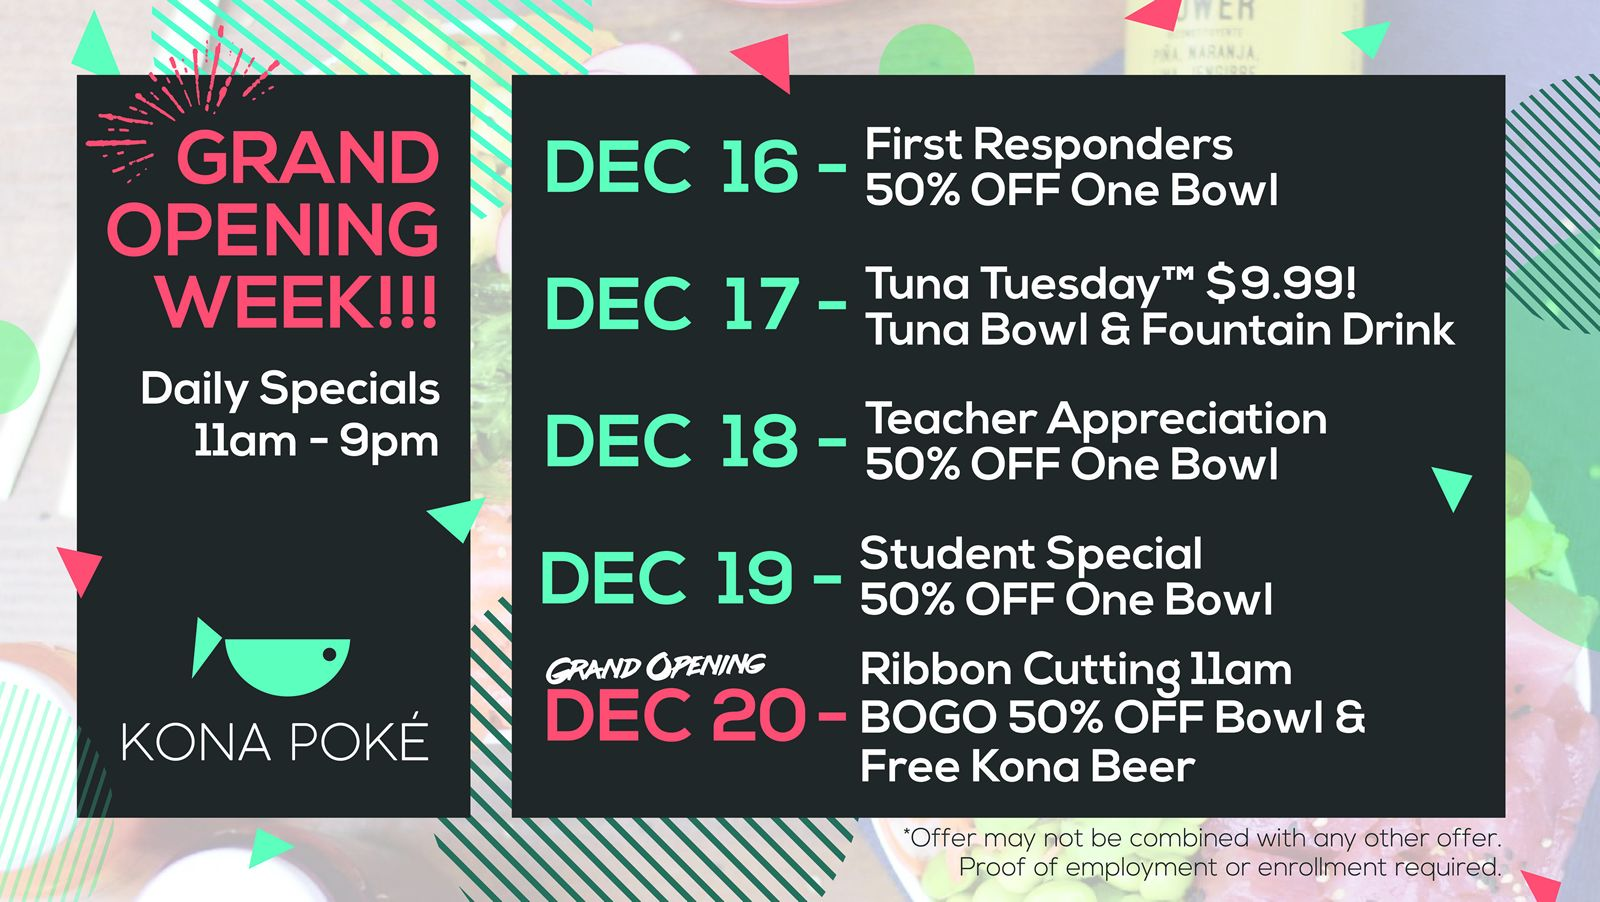 Kona Poké Announces Week-Long Grand Opening Celebration Of Its Second Location In Sanford From Monday, December 16 Through Friday, December 20